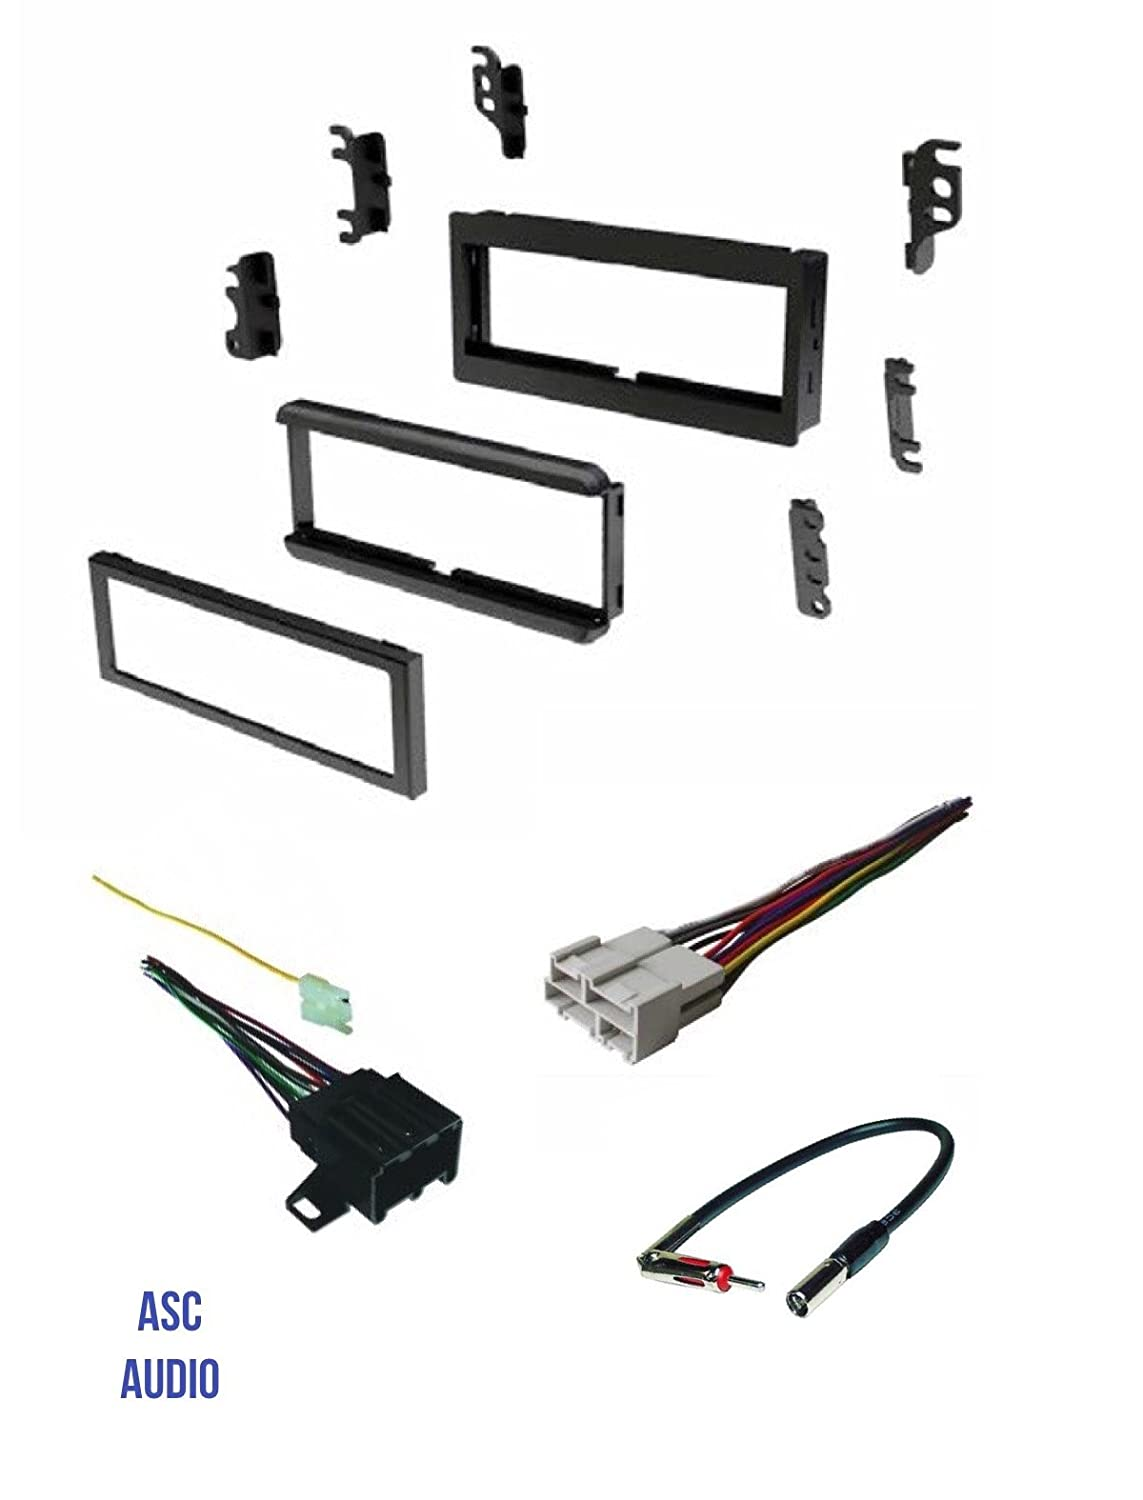 Asc Audio Car Stereo Install Dash Kit Wire Harness And Eldorado Wiring Get Free Image About Download Antenna Adapter For Installing A Single Din Aftermarket Radio Some Gm Buick